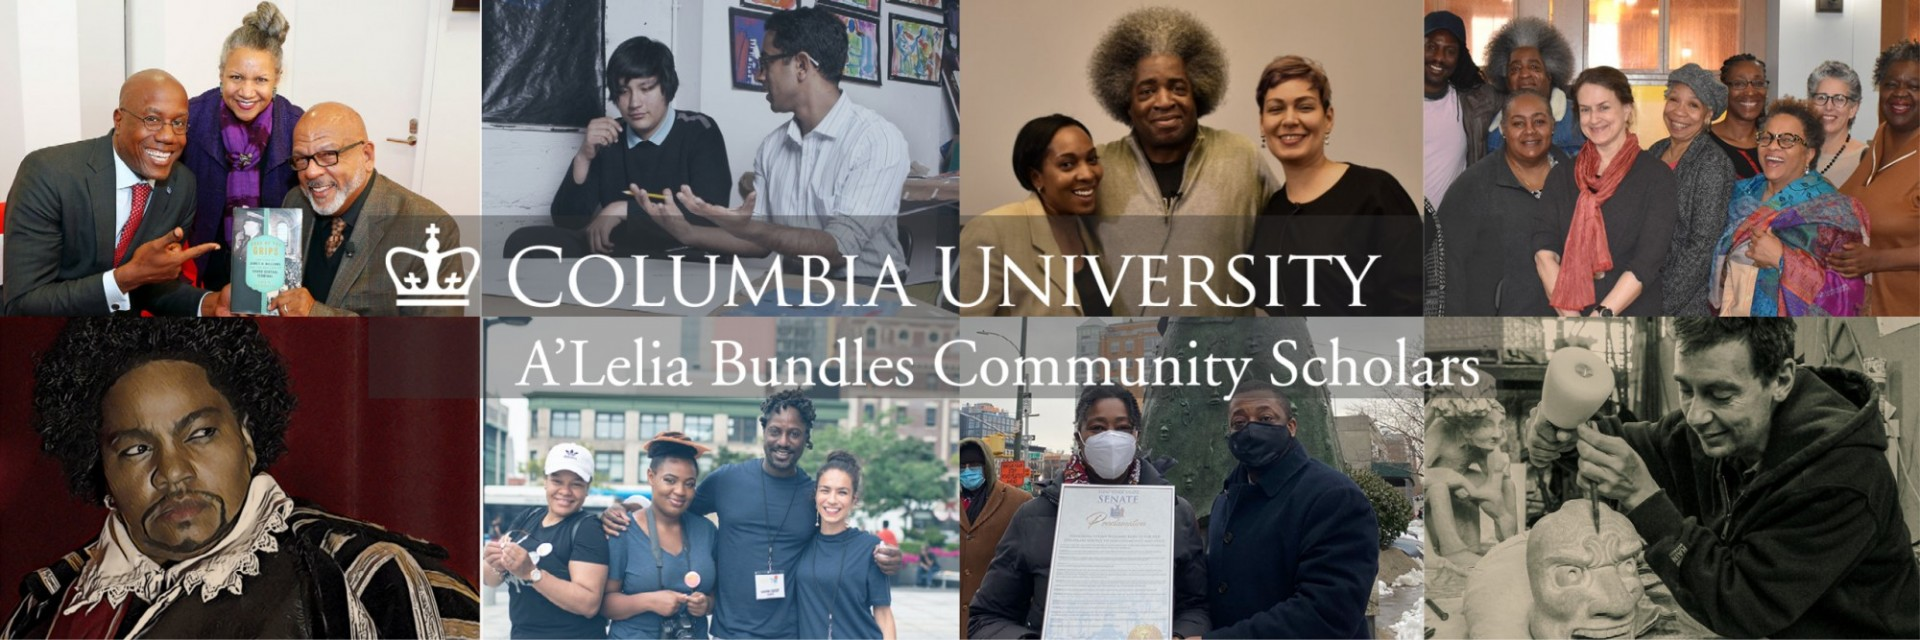 Community scholars collage